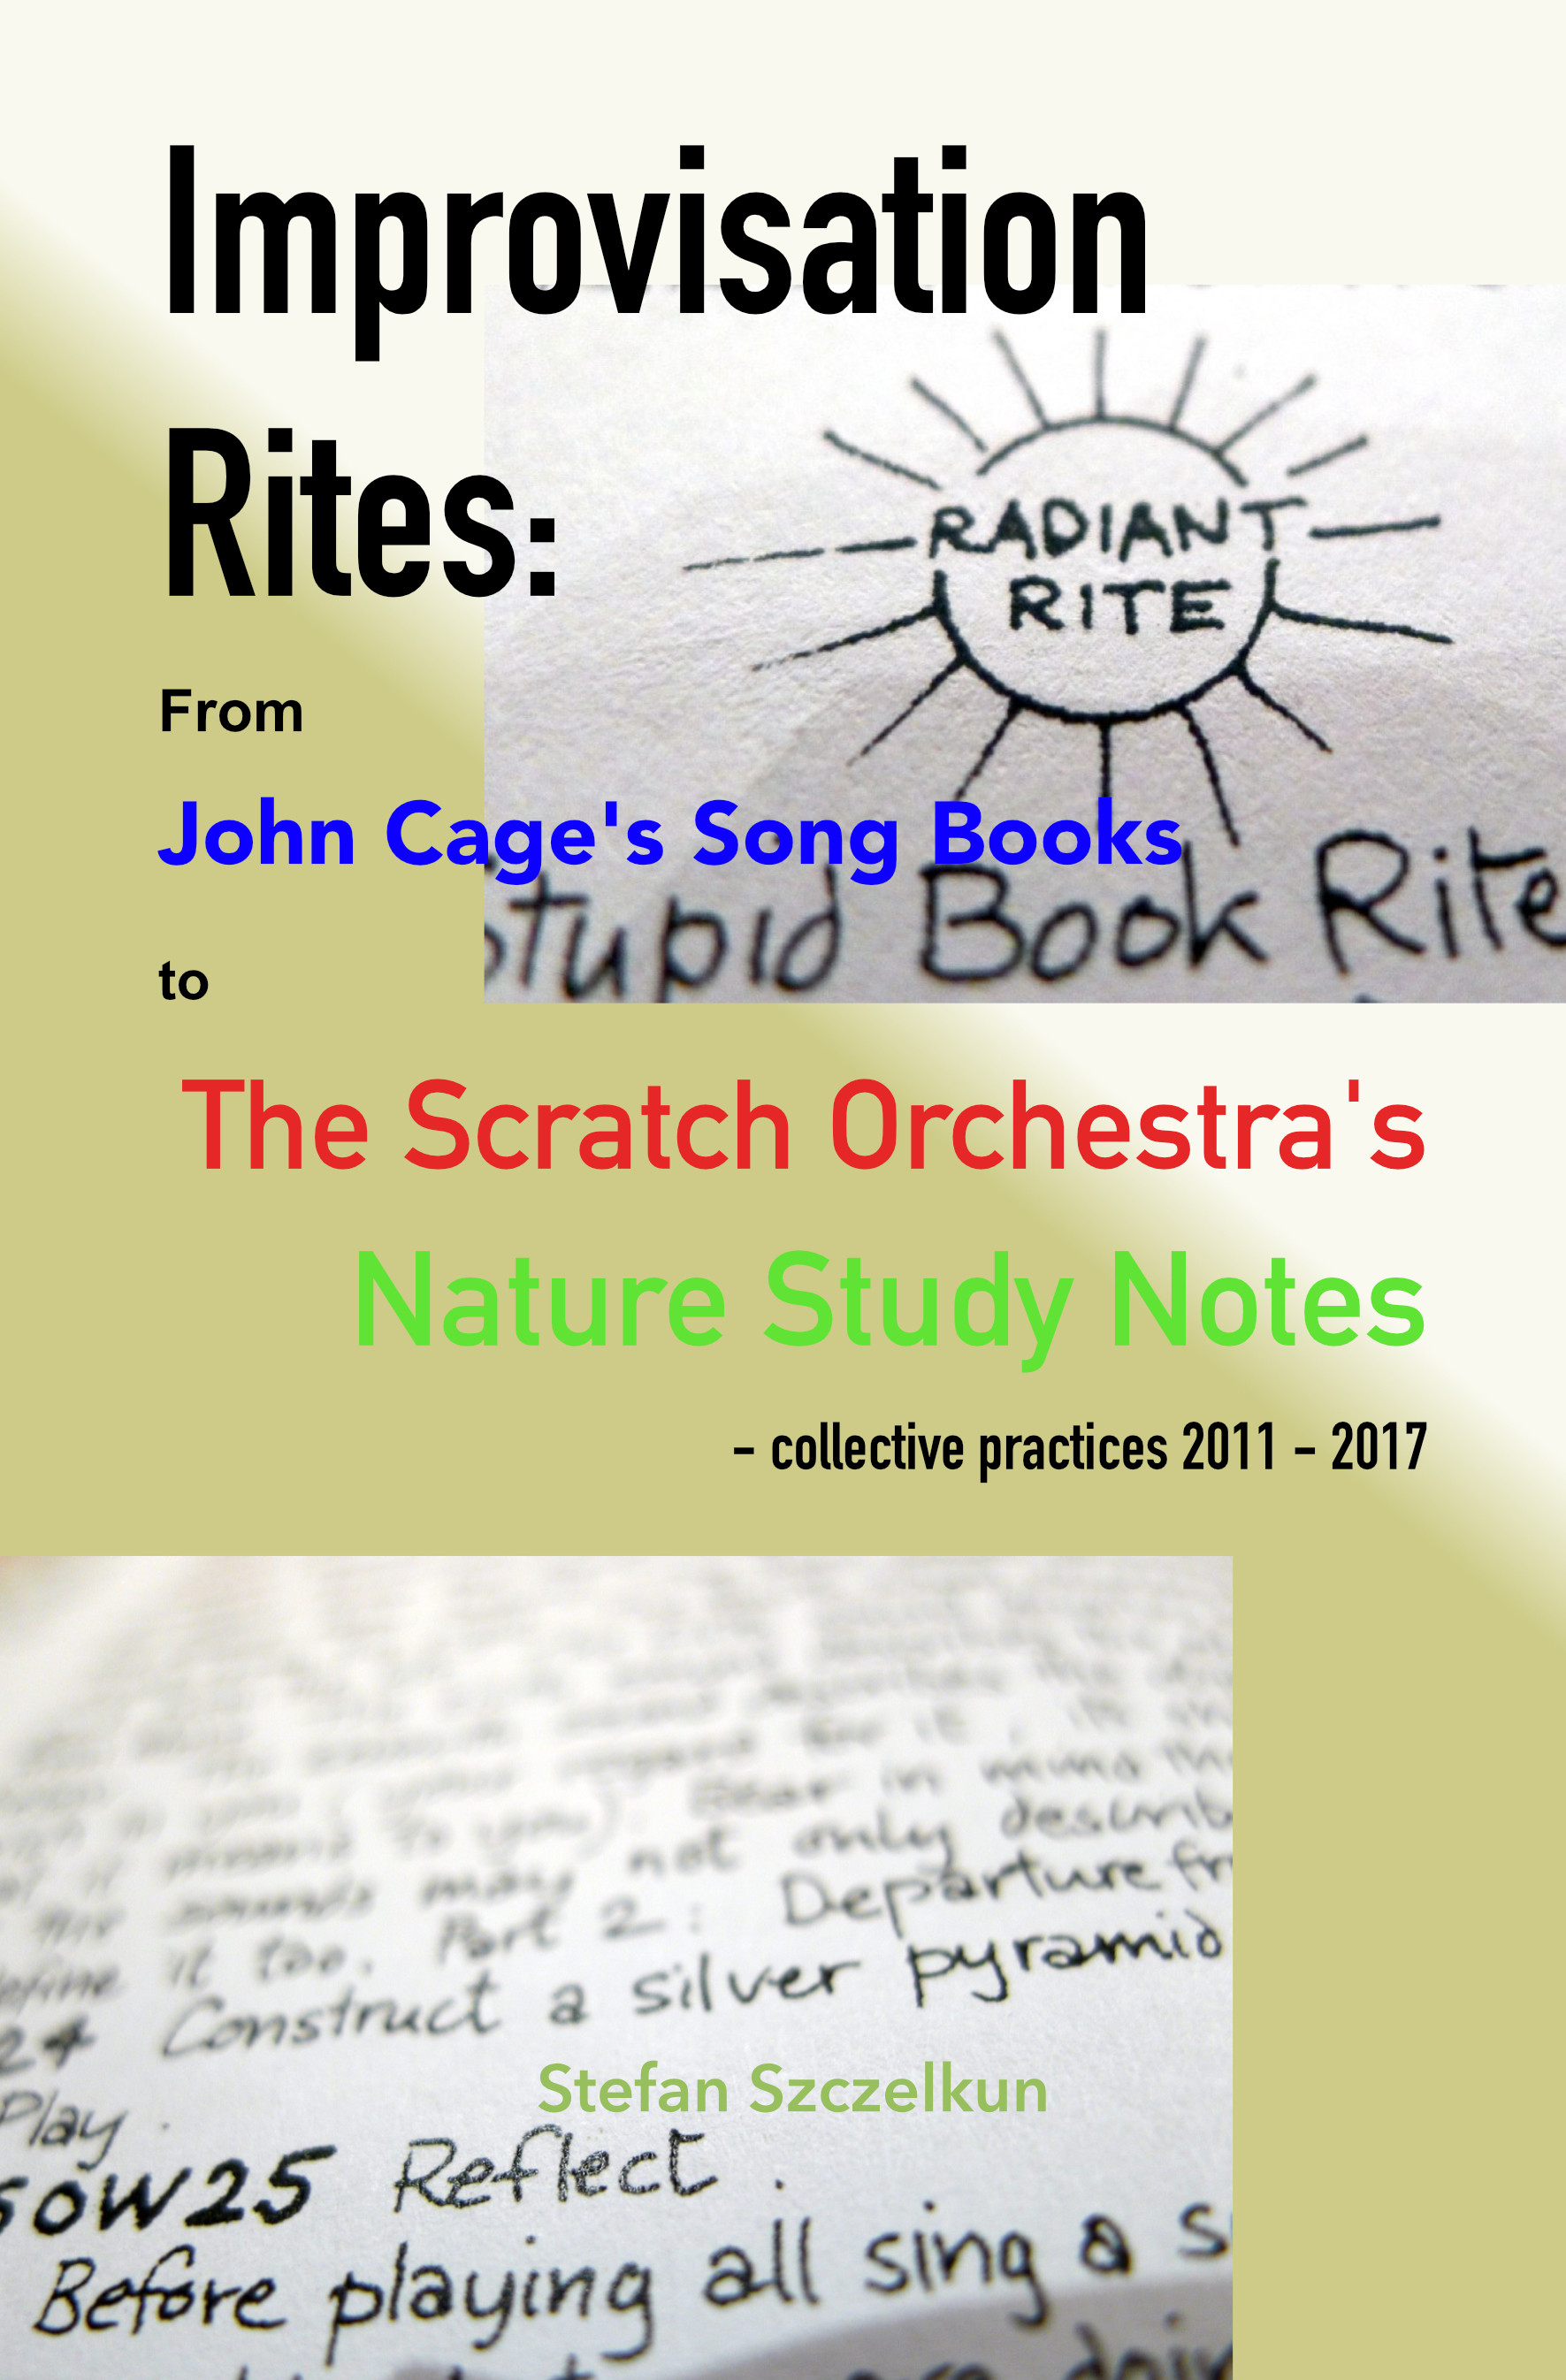 Improvisation Rites: from John Cage's 'Song Books'